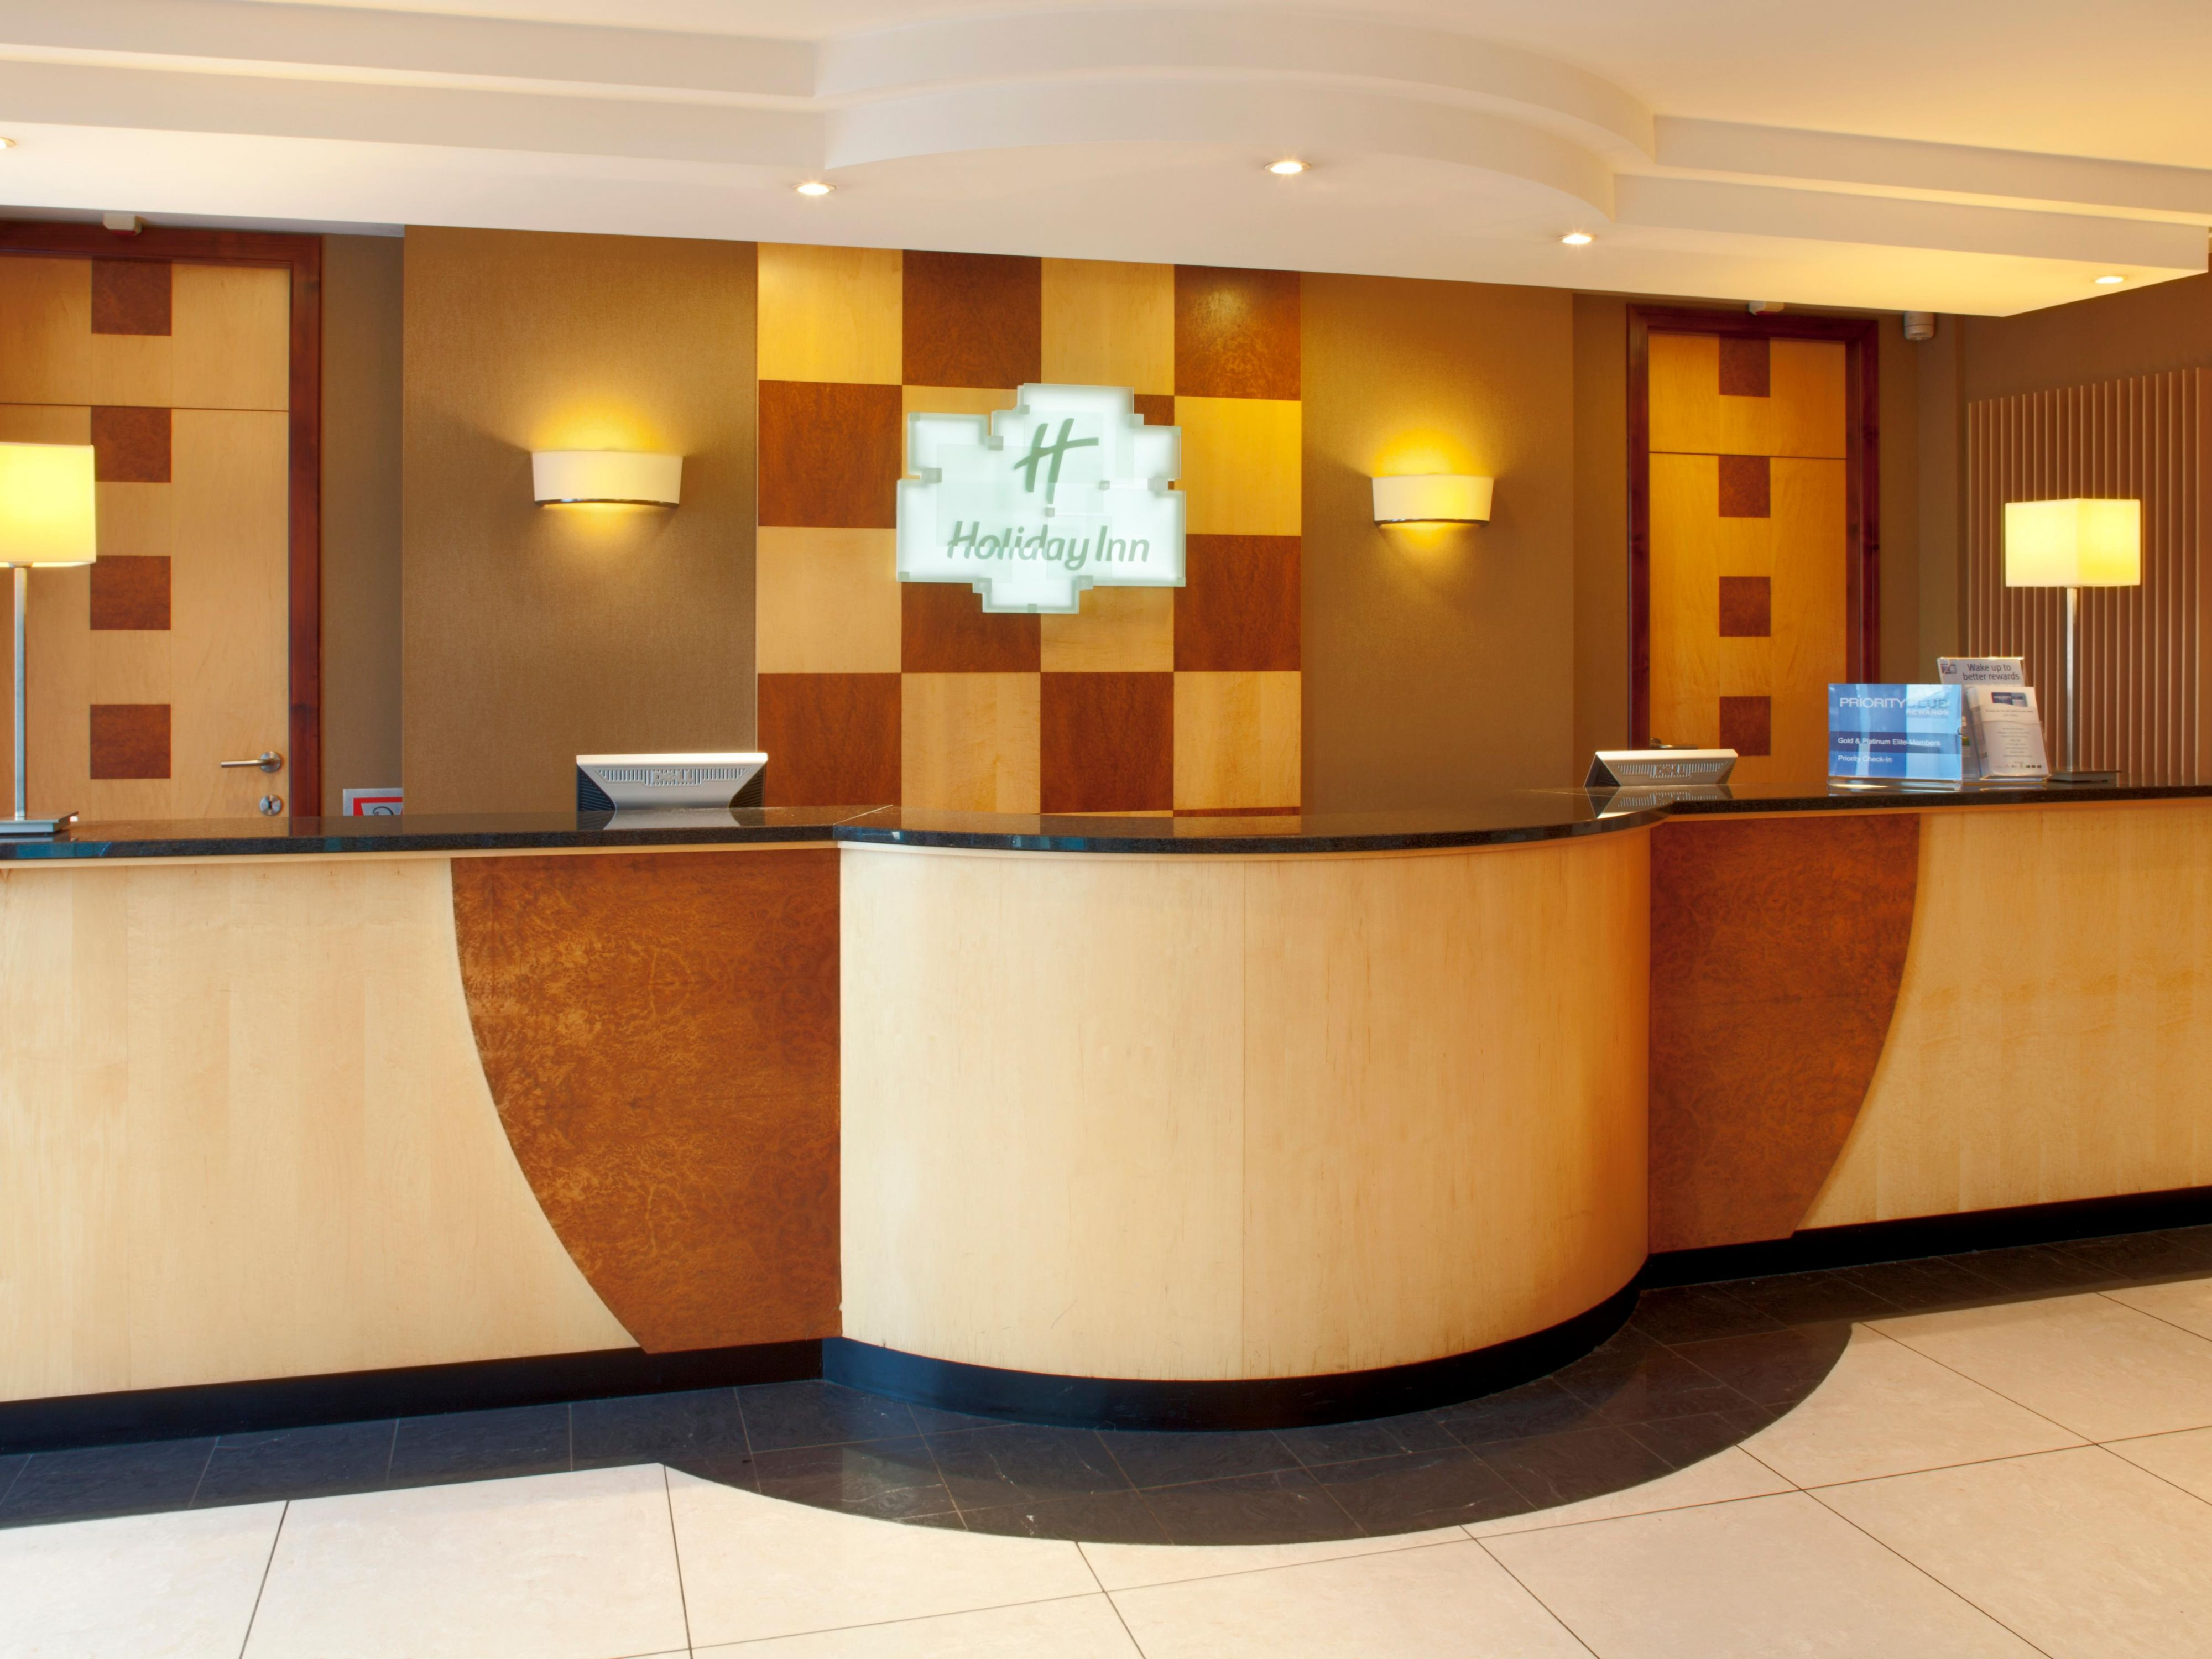 Holiday Inn Calais Reception open 24/7